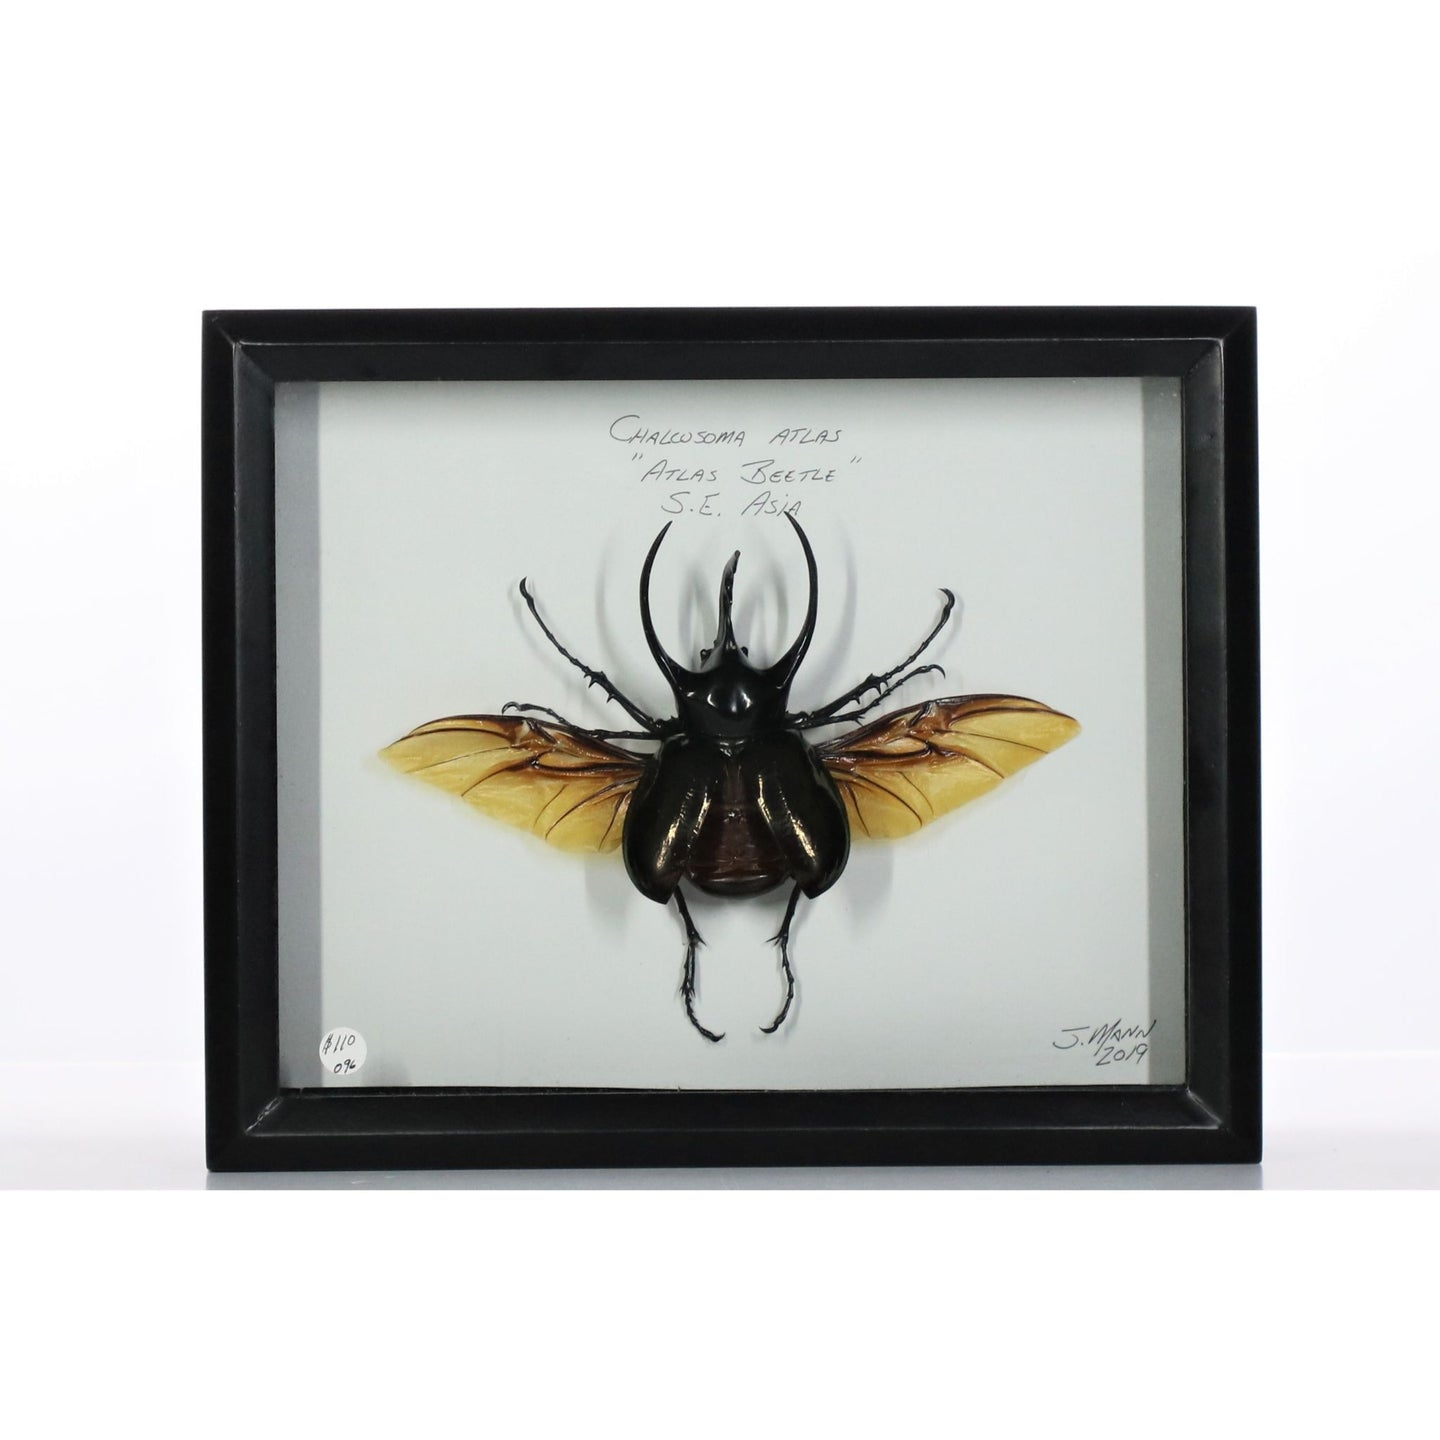 Atlas Beetle 8x10 Black #96 Framed Art - Insecta Etcetera